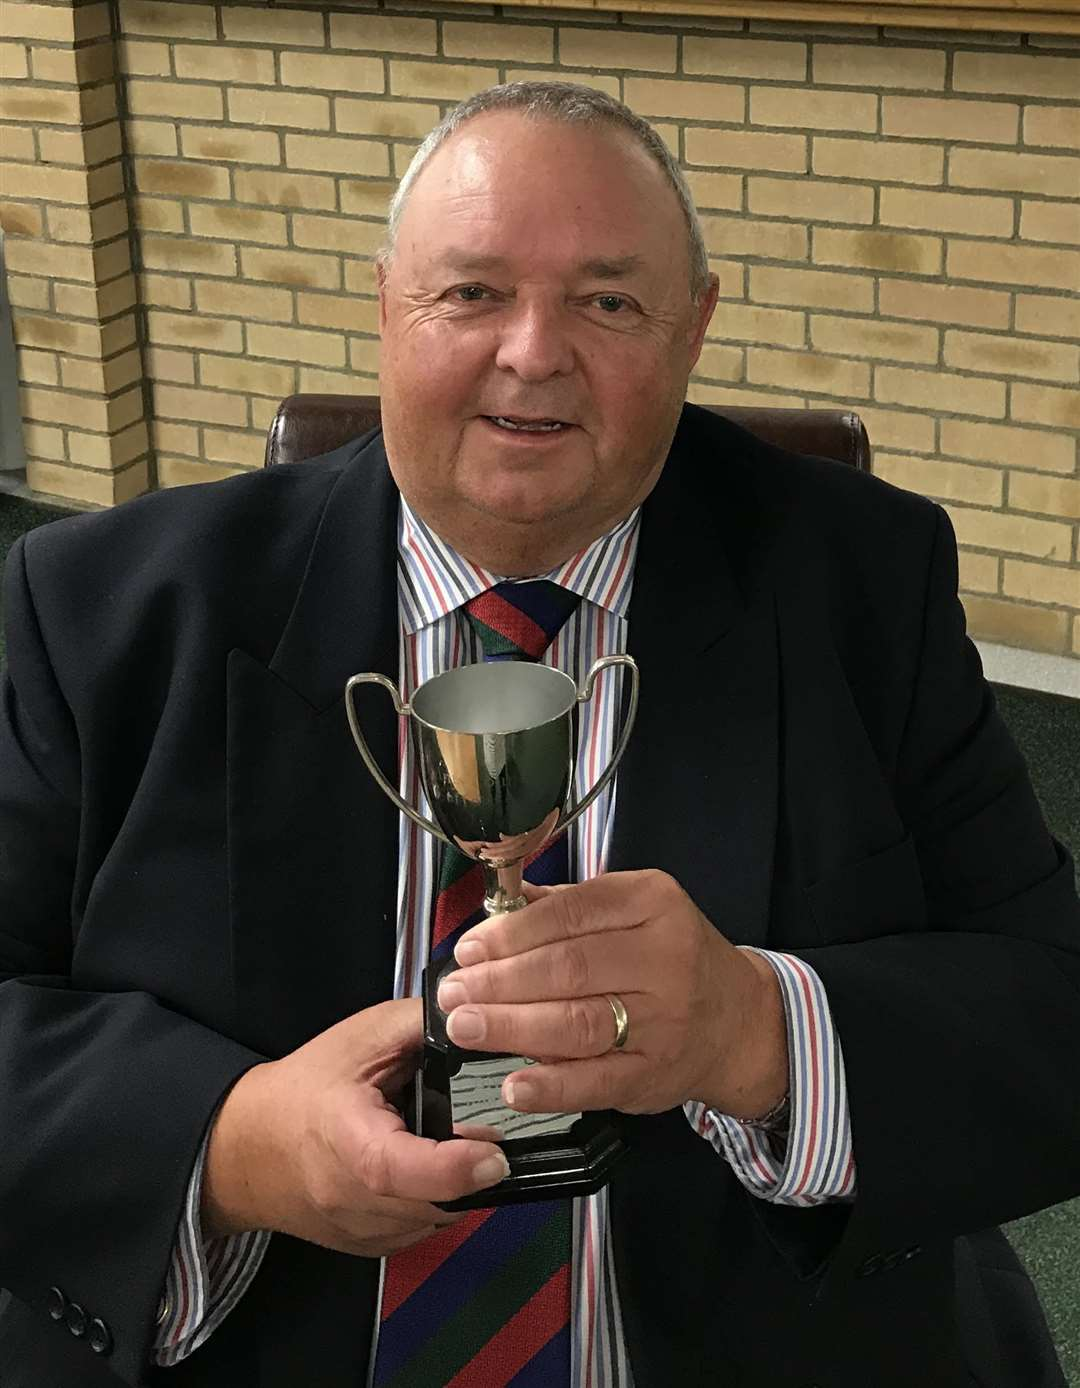 Bury St Edmunds Cricket Club chairman Paul Whittaker with the Sunday league runner up trophy which the club claimed in the 2019 season (33553251)